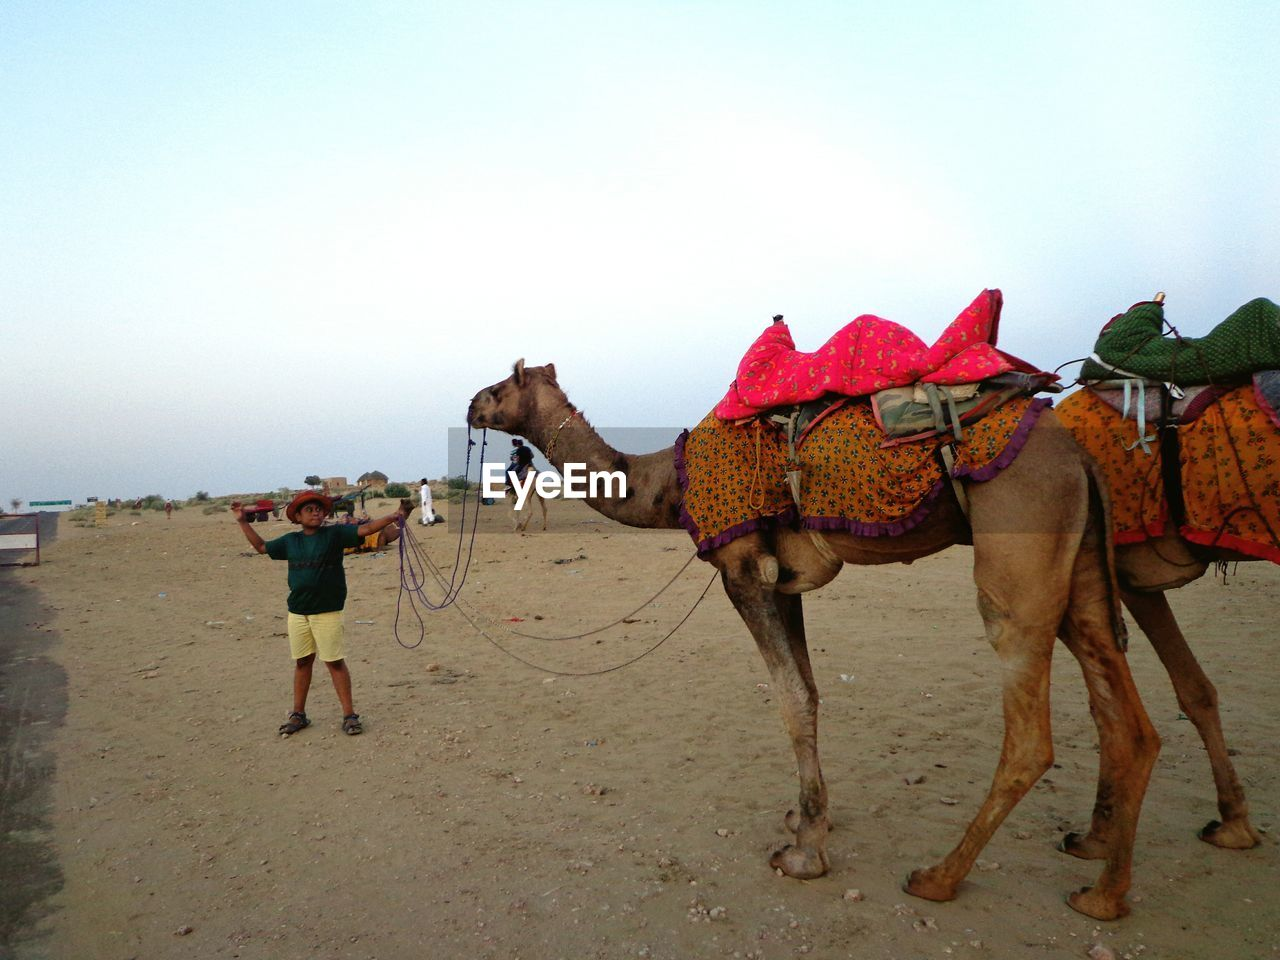 camel, domestic animals, working animal, animal themes, sand, desert, mammal, clear sky, one animal, outdoors, sky, real people, full length, nature, day, one person, people